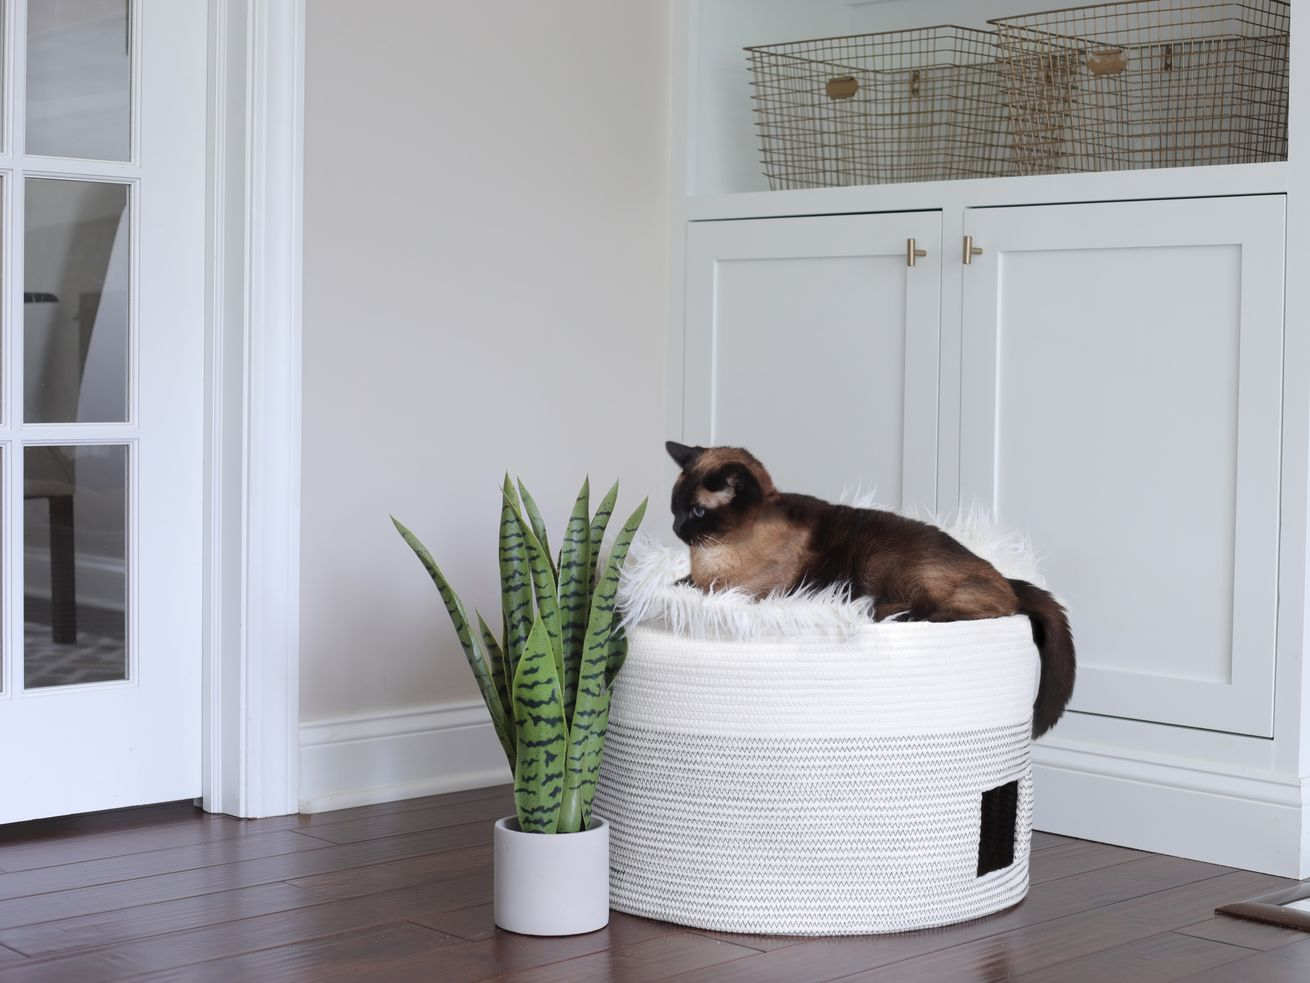 Cat sitting on top of a DIY bed made from a basket.